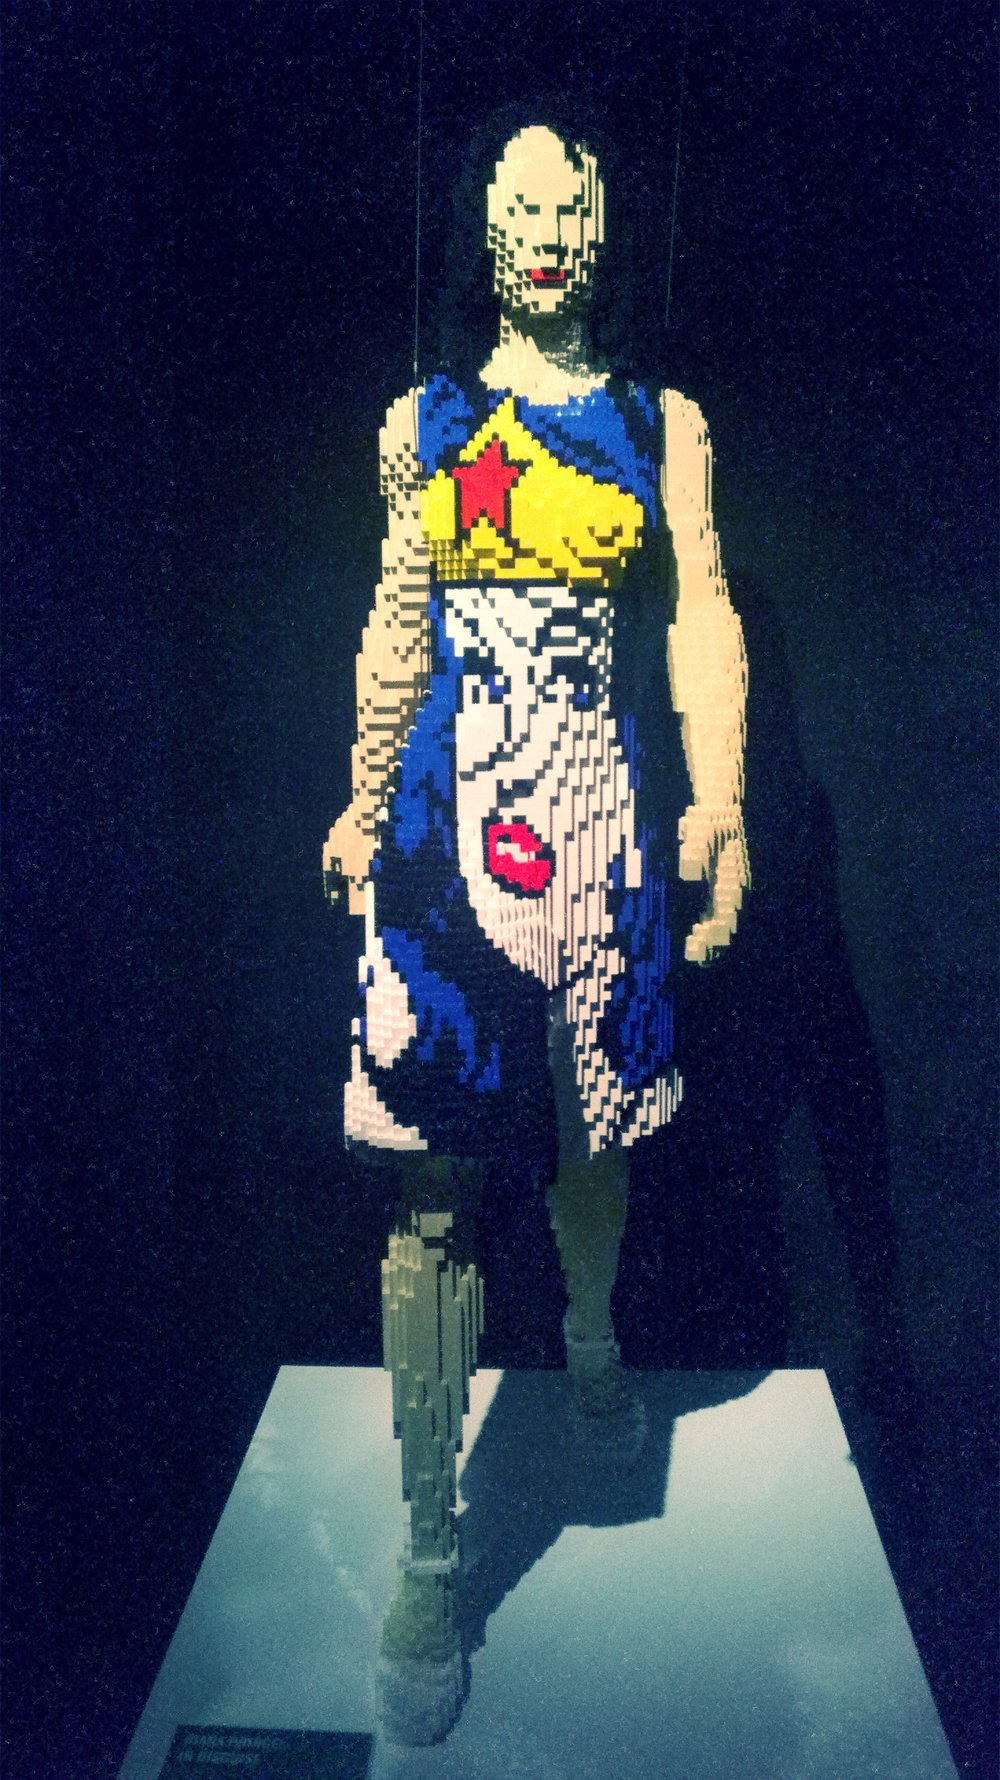 DC: Art Of the Brick